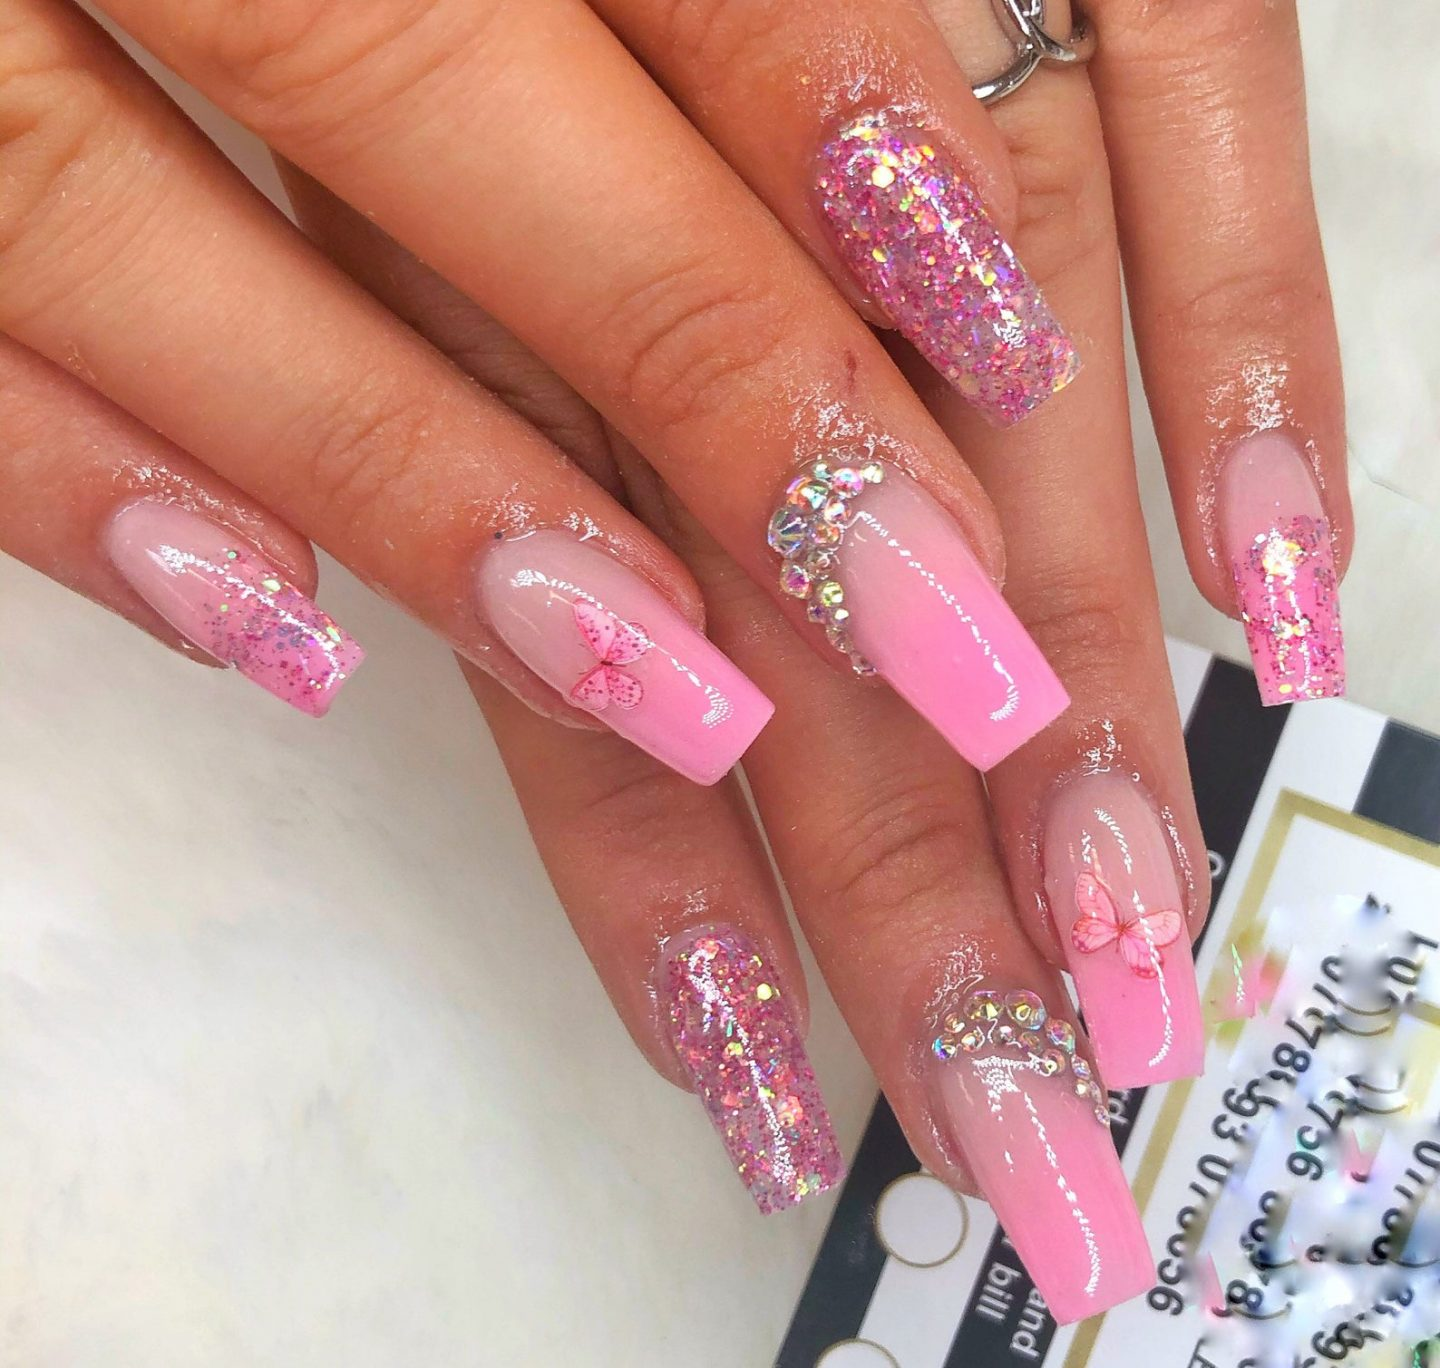 Pink ombre nails with glitter and rhinestones